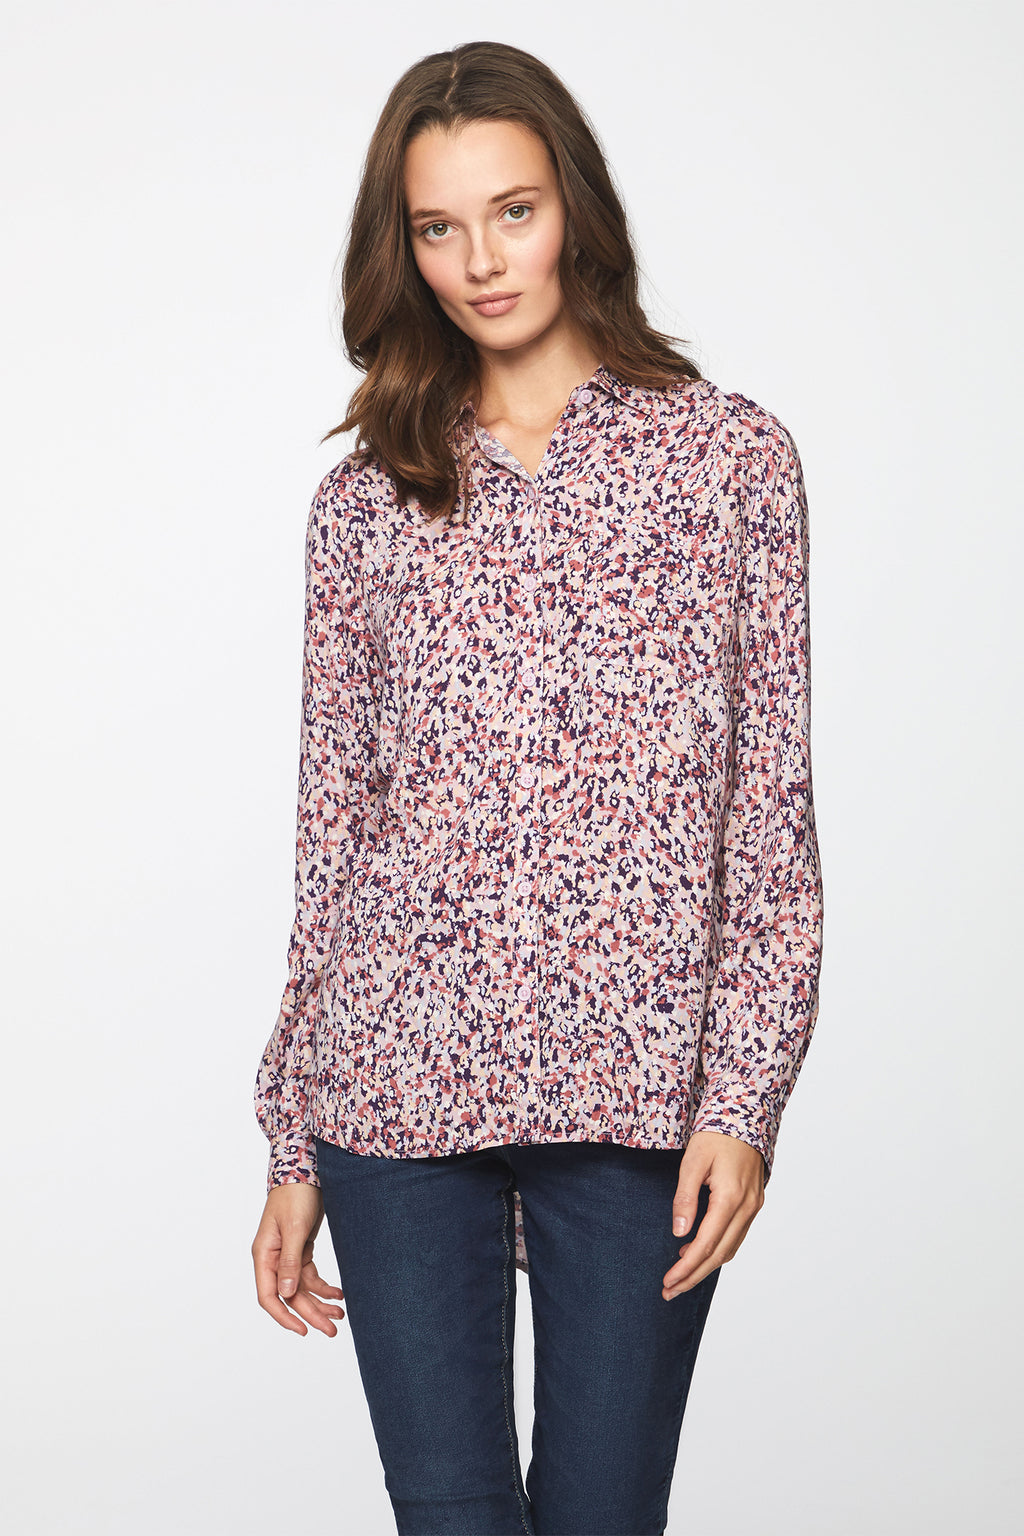 ALANNA SHIRT - ROSE GARDEN